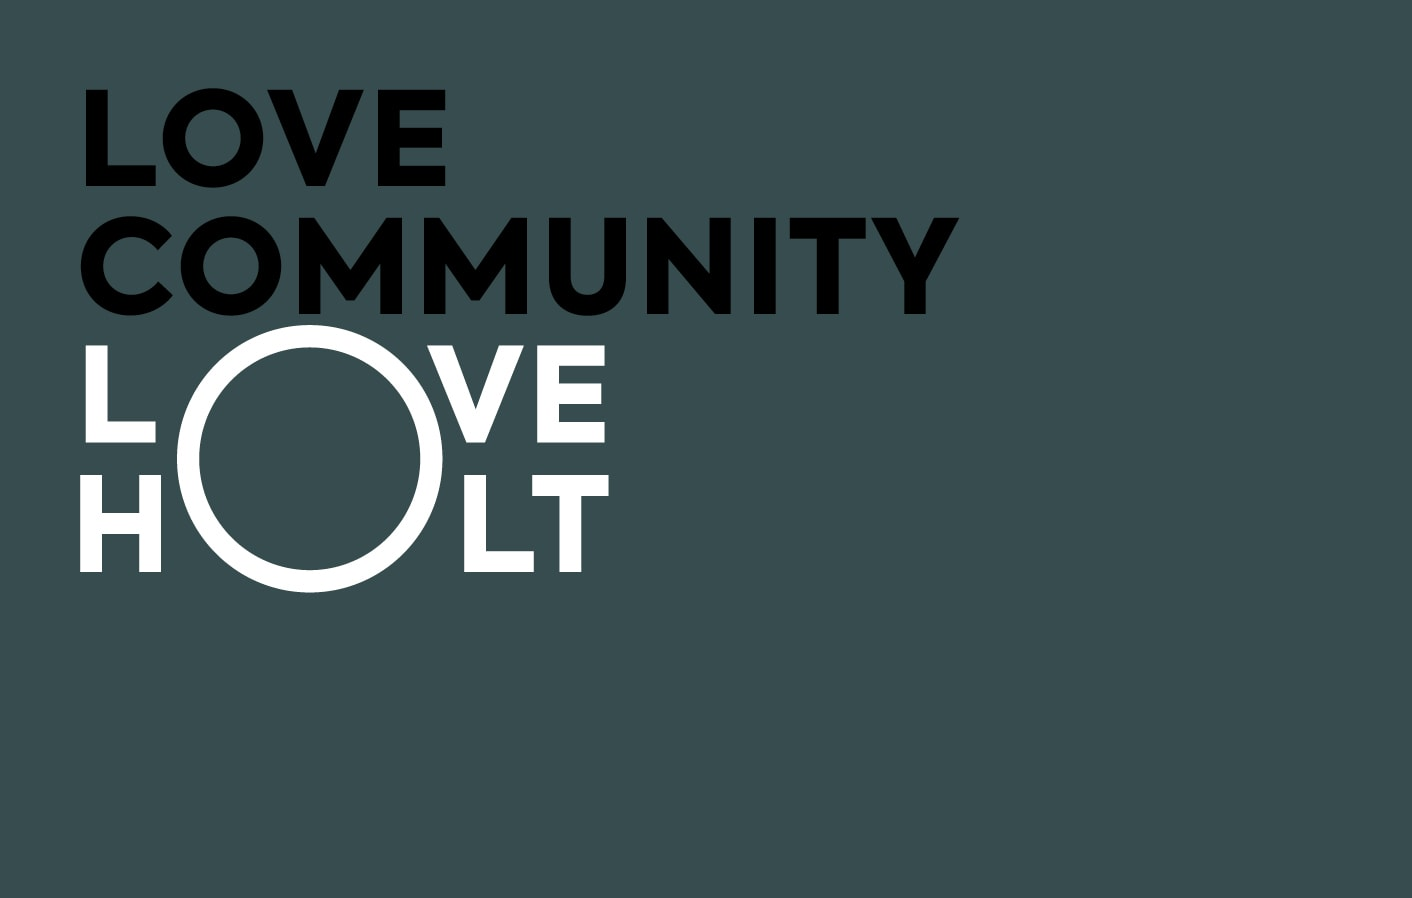 Love Community Love Holt